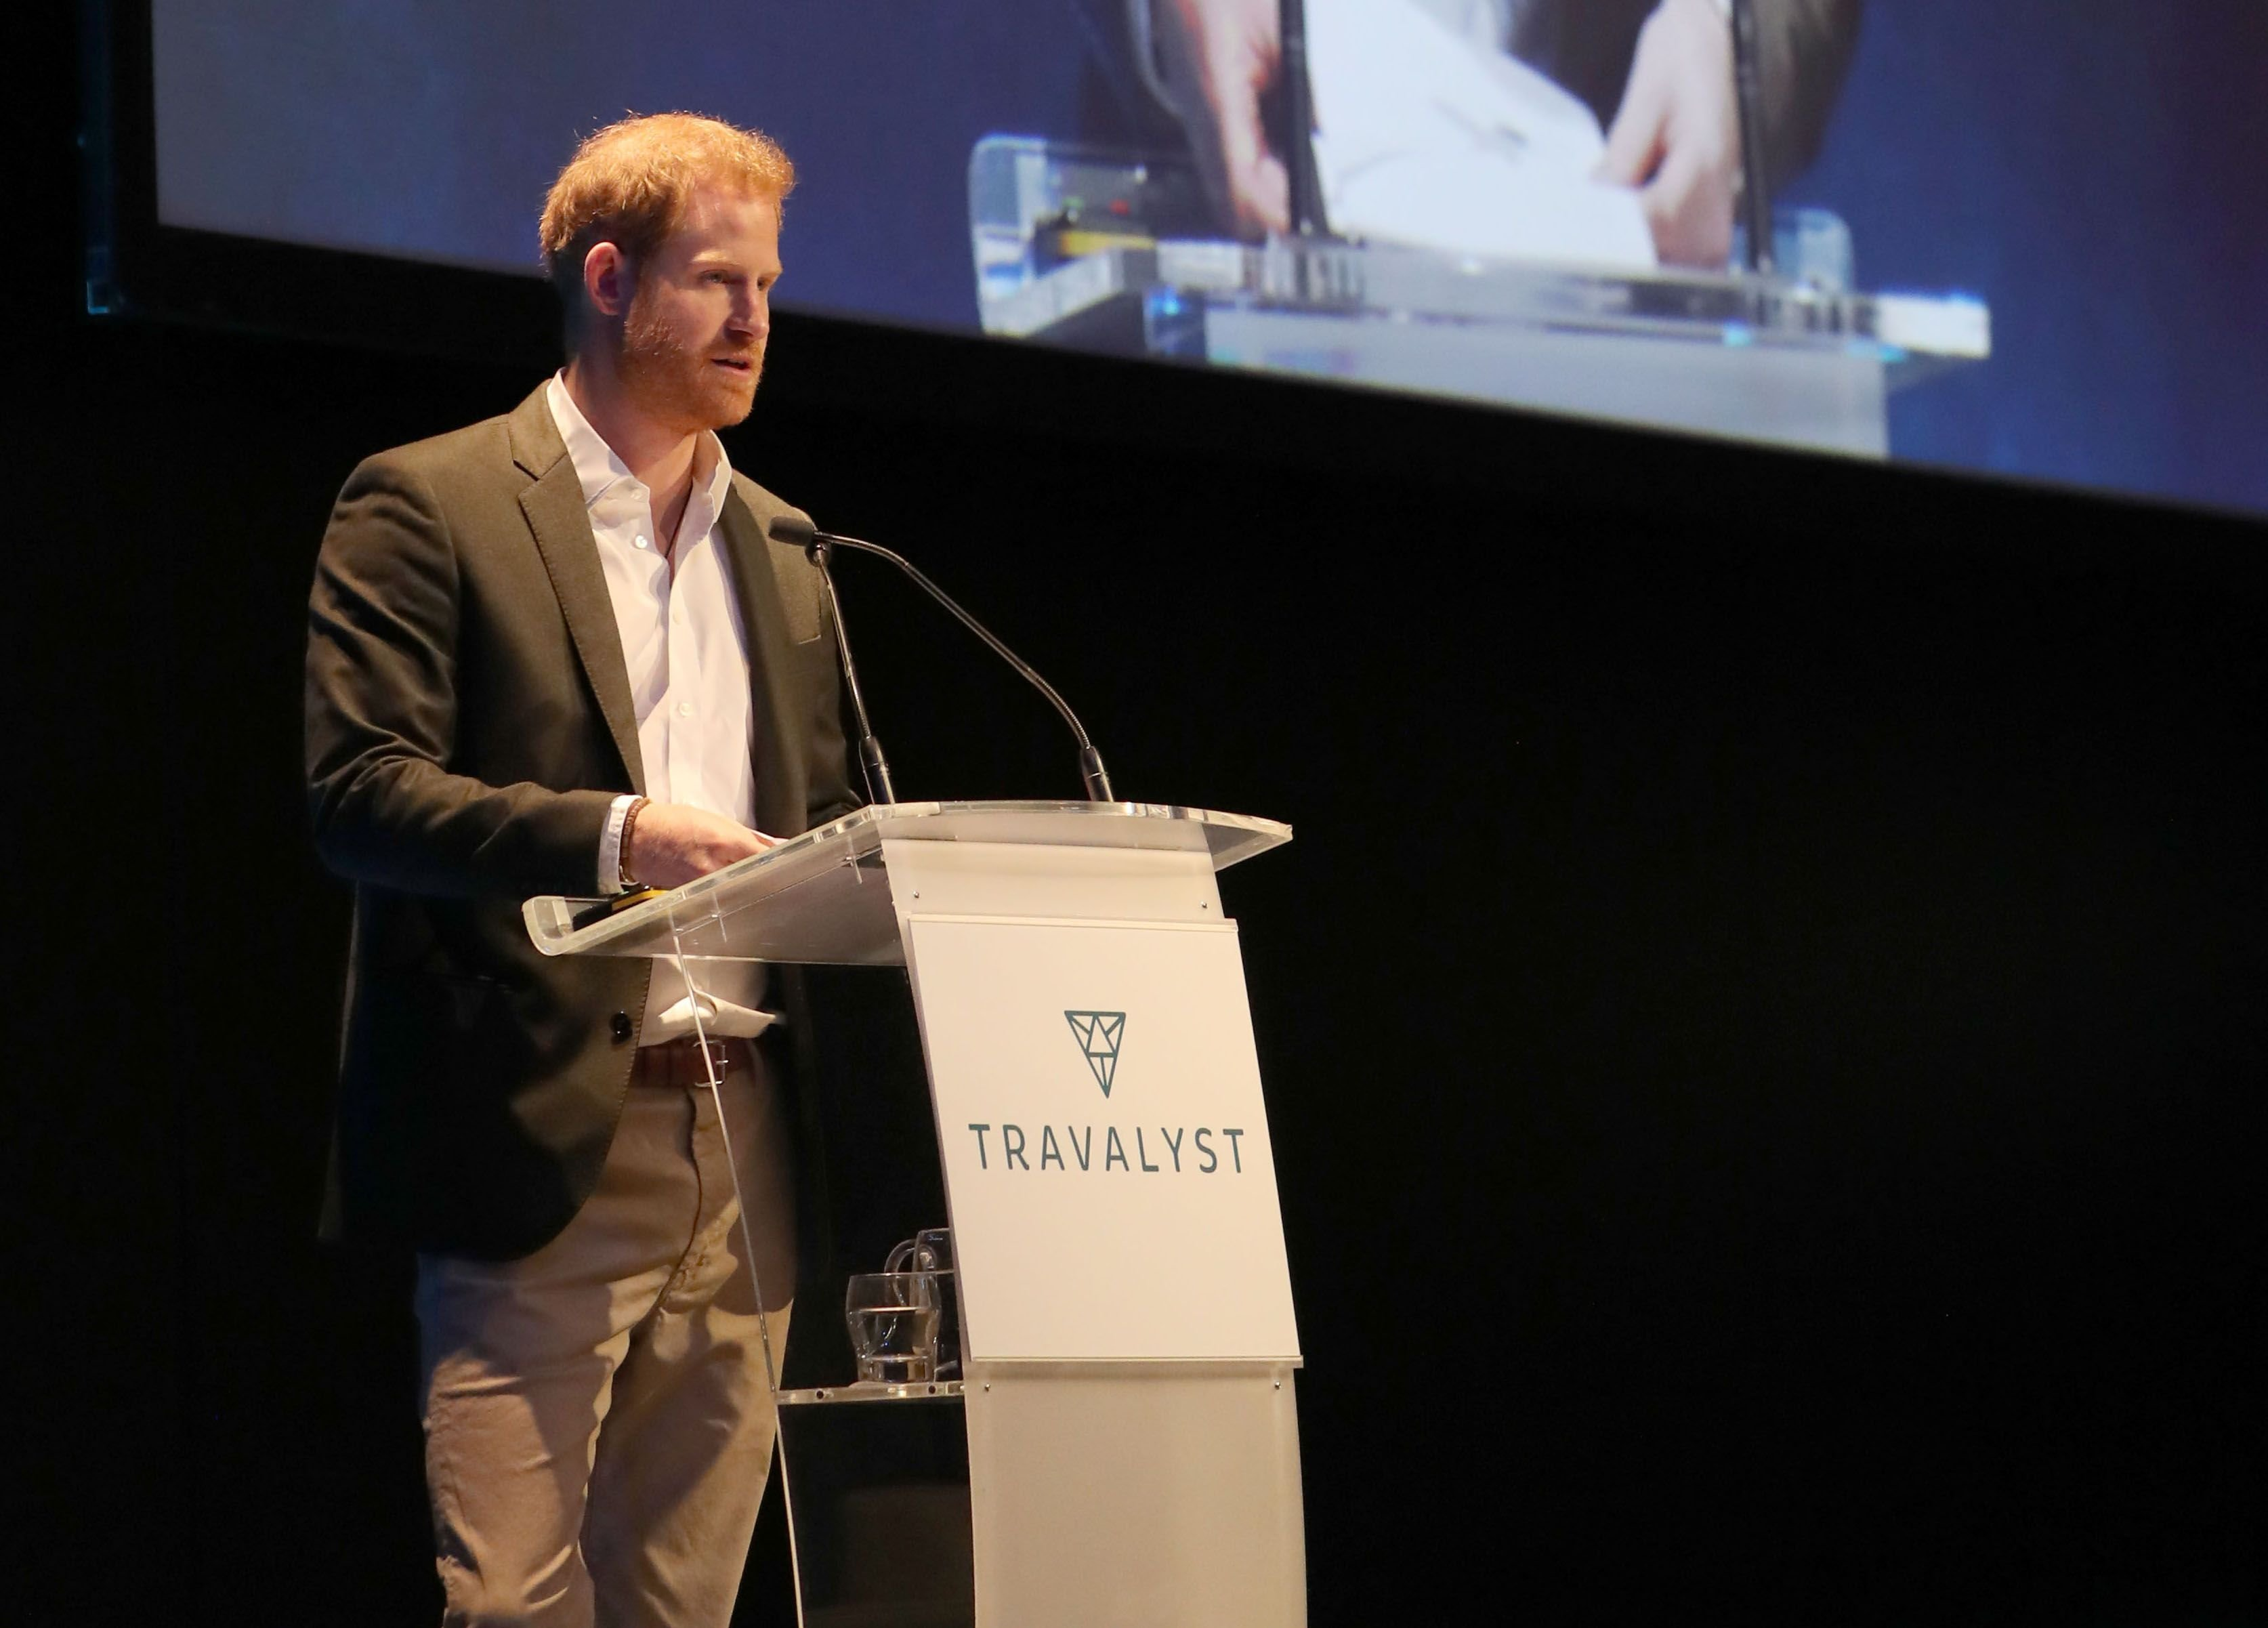 Prince Harry at the Edinburgh International Conference Centre on February 26, 2020 | Photo: Getty Images